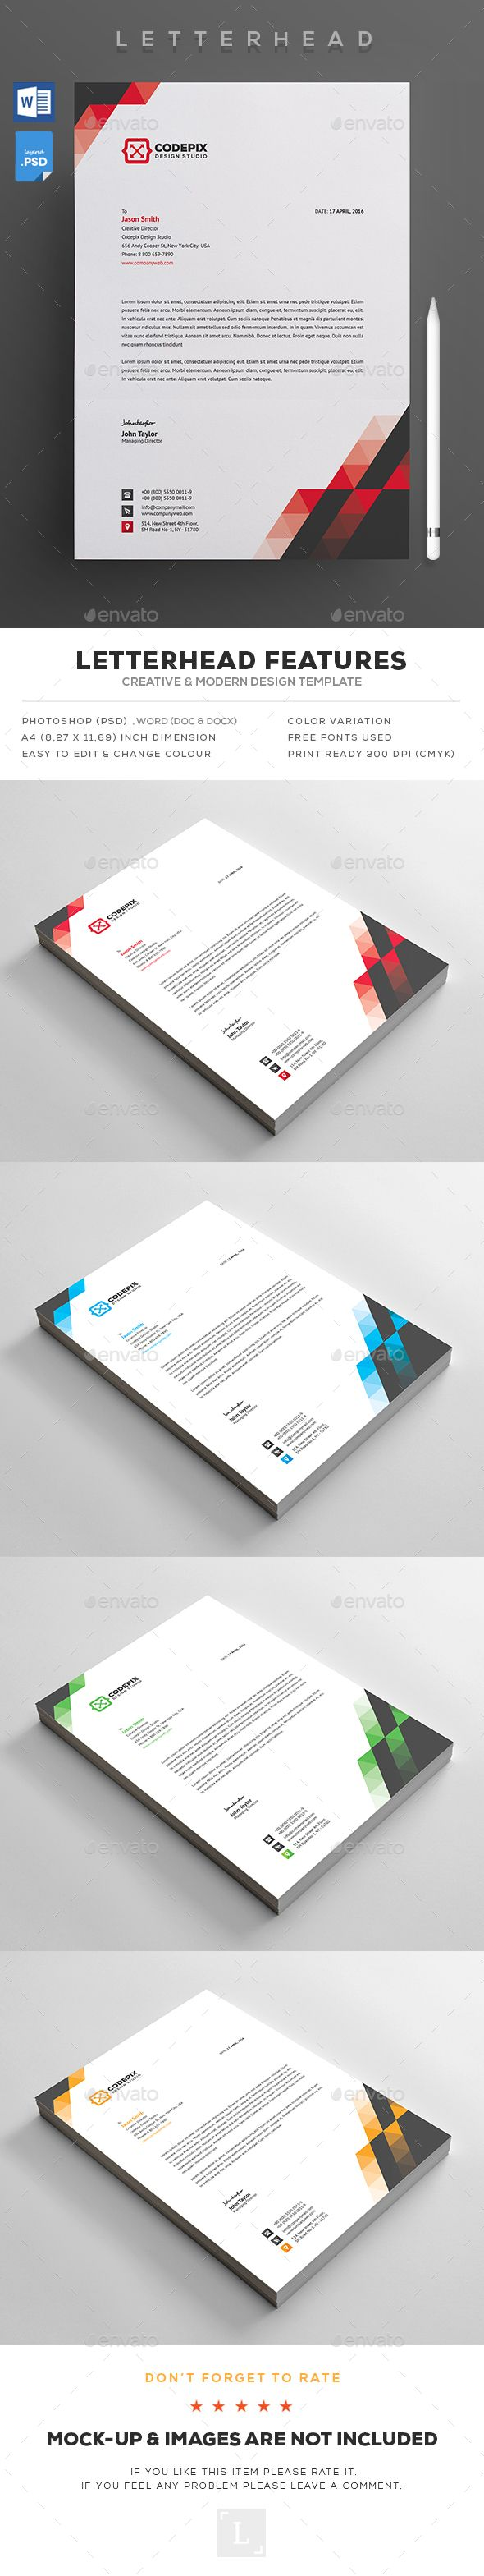 Best Letterhead Design Templates Images On